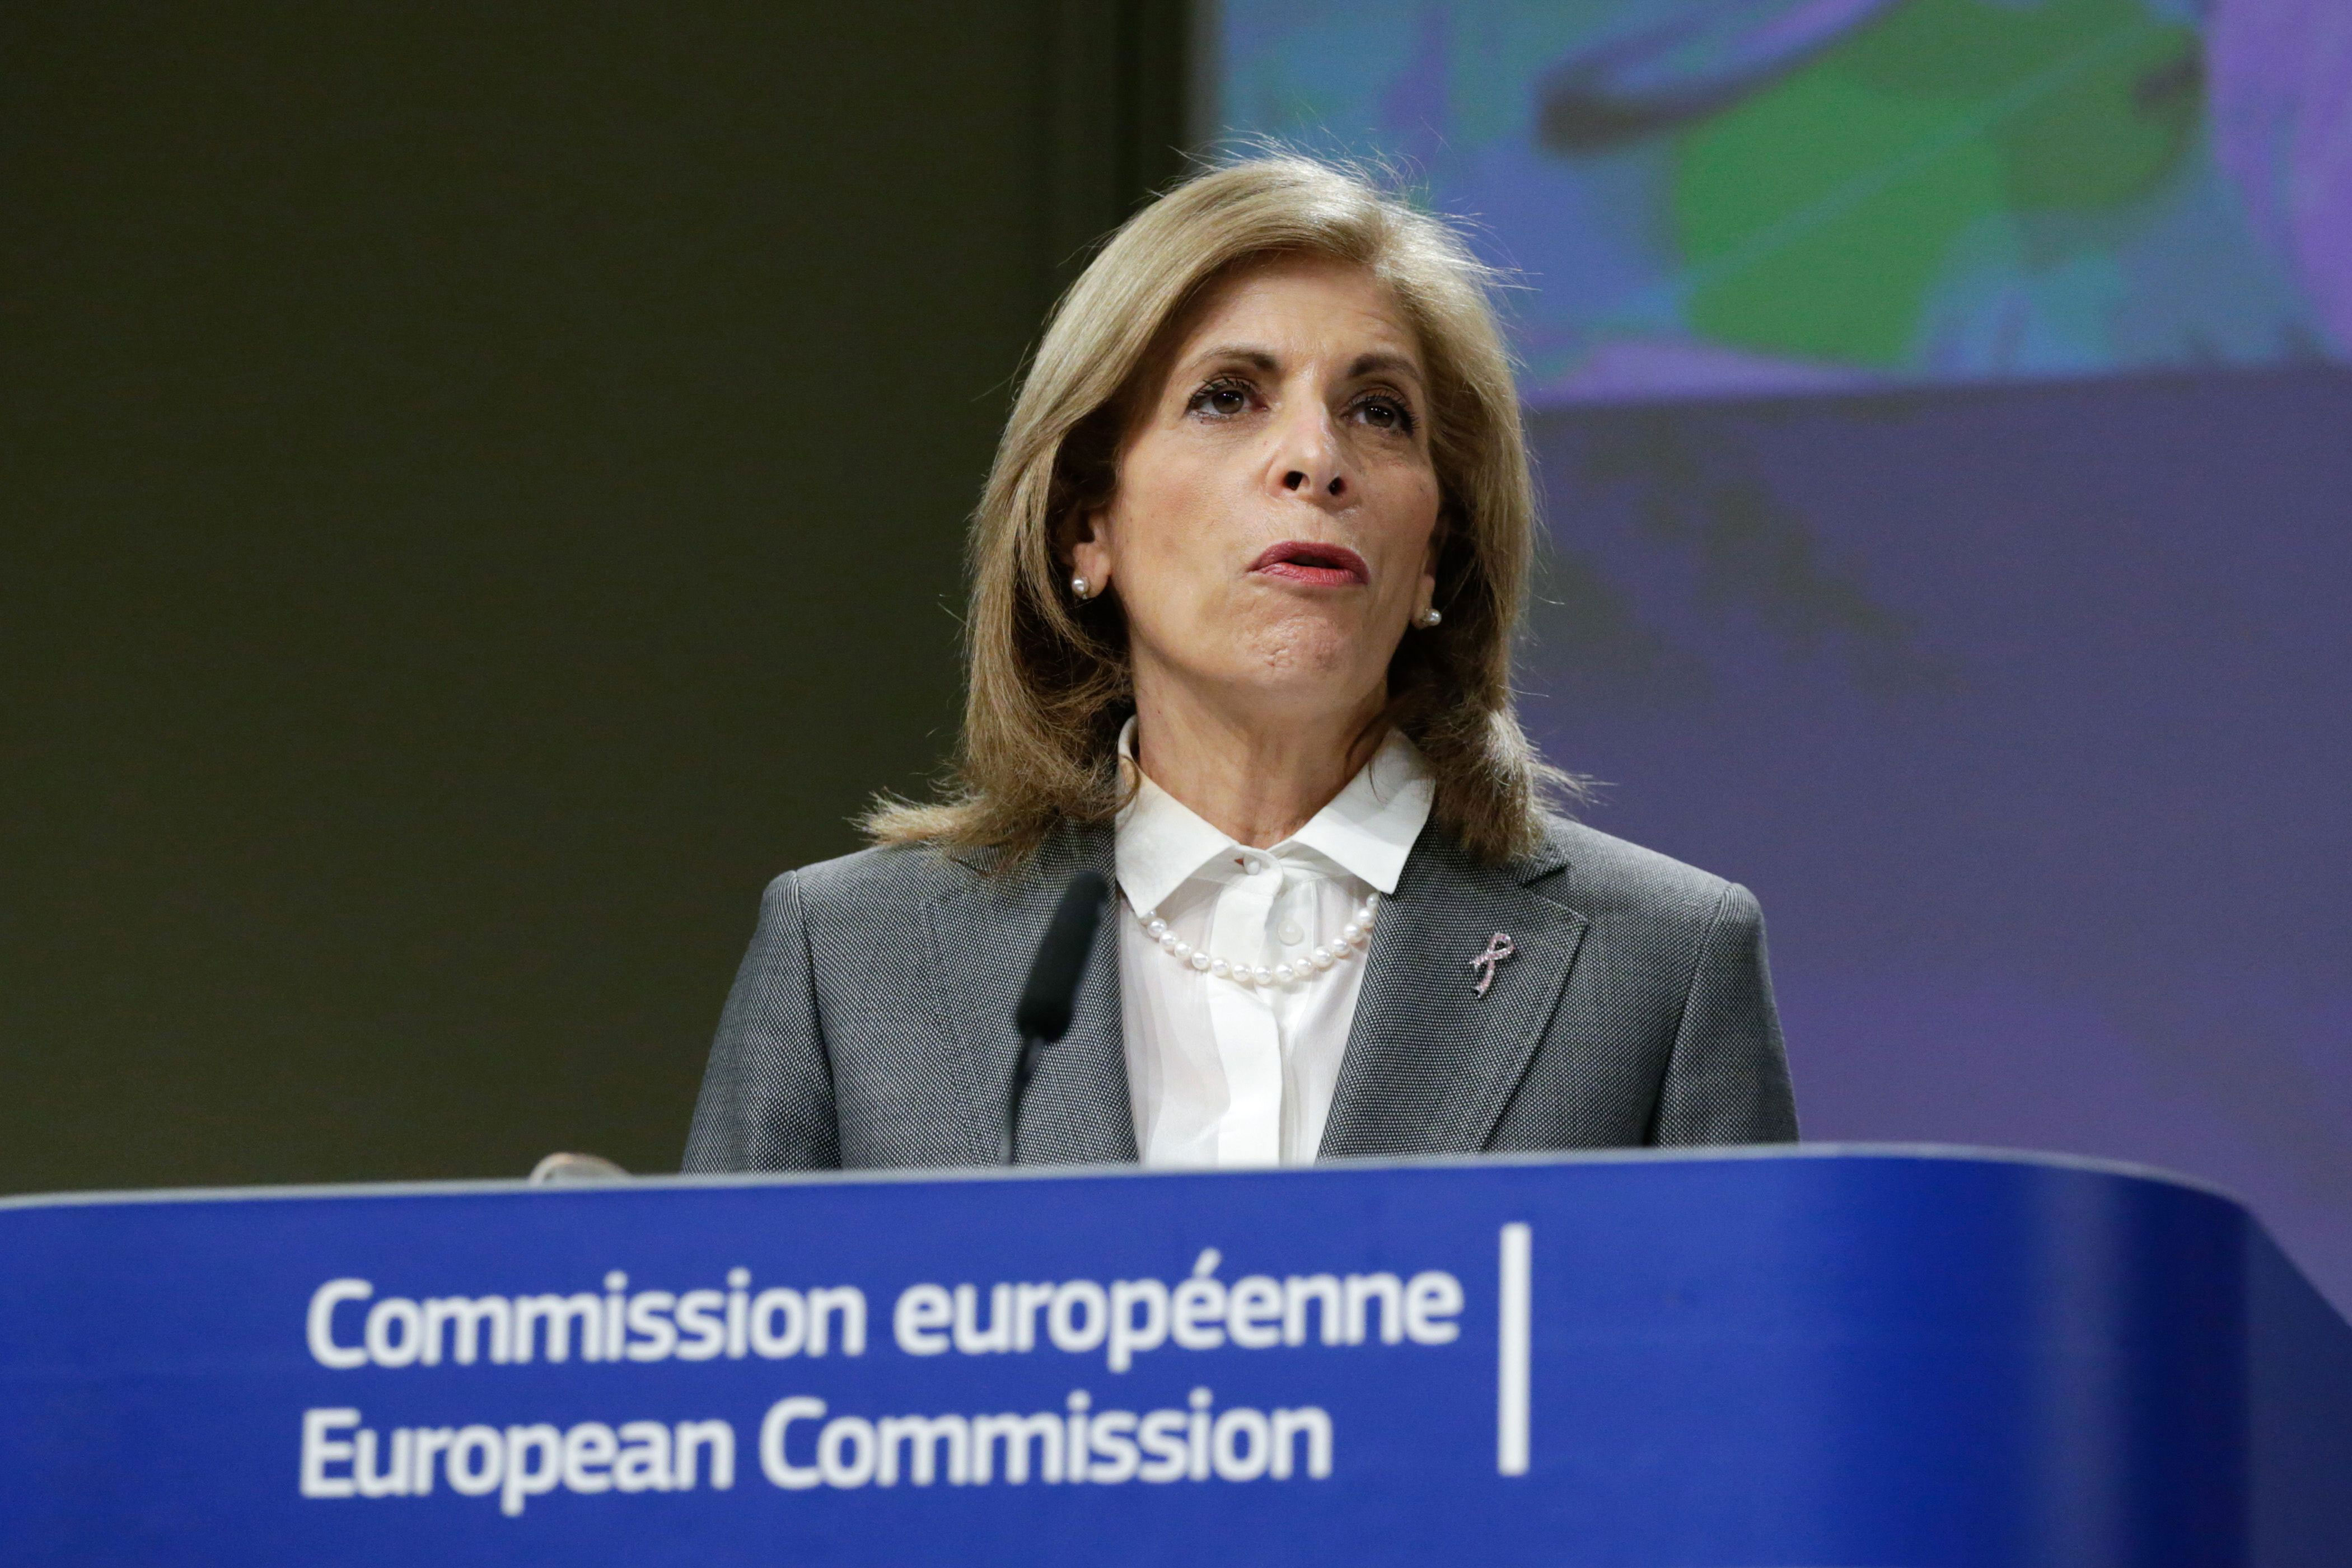 Stella Kyriakides, European commissioner for health and food safety, speaks at a press conference in Brussels, Belgium, on February 17.